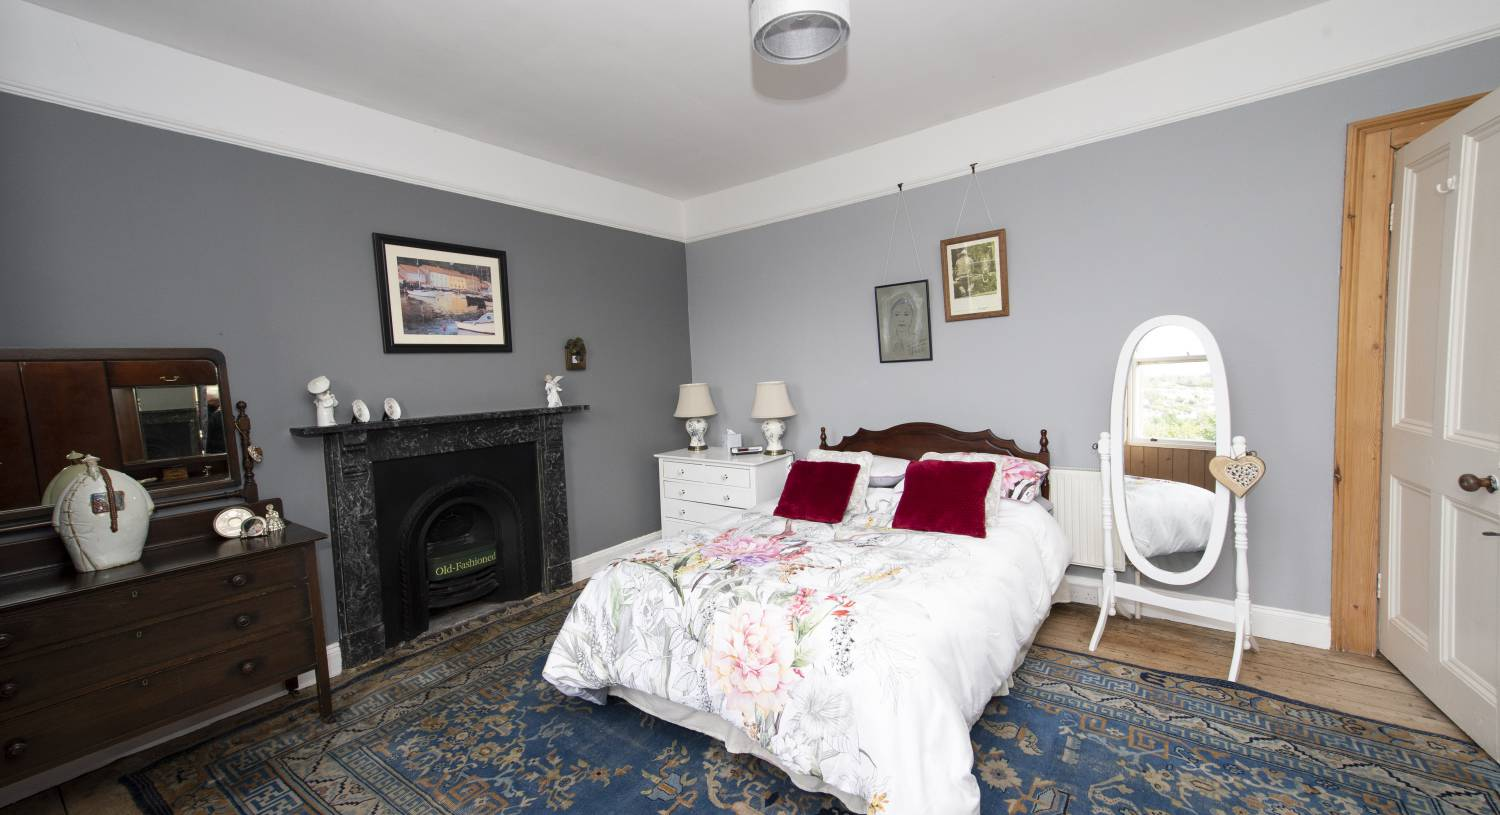 History in spades in this family home on Cork's Cobh 'Riviera'